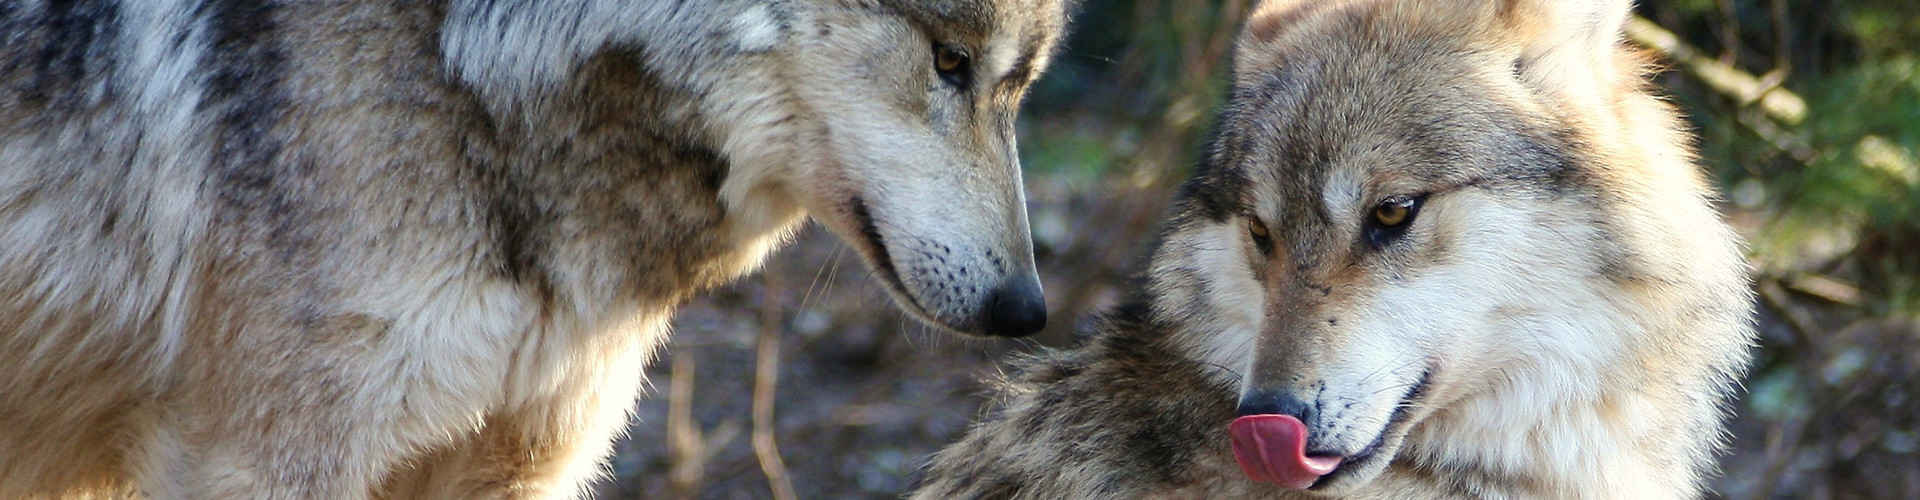 Take ActionSign the Petition for More Wolf Releases